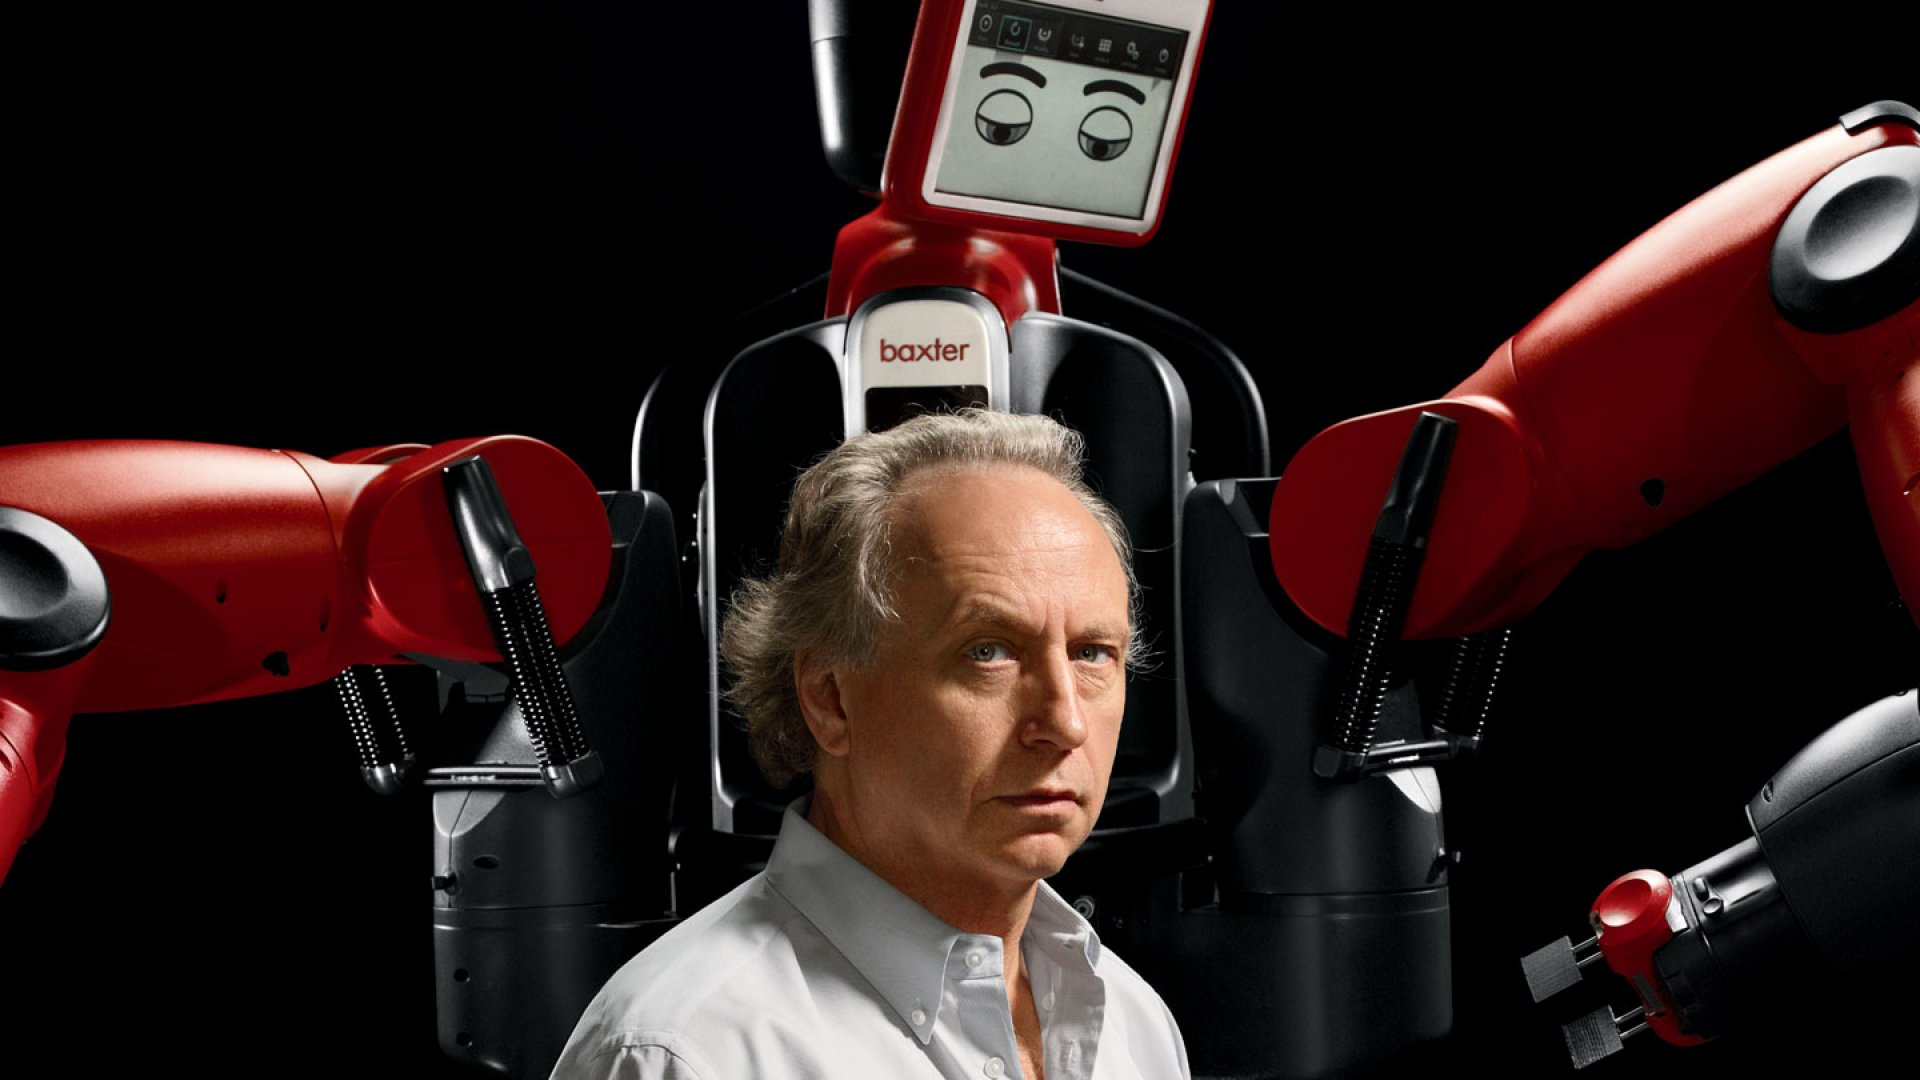 <b>Beyond Vacuums:</b> Rodney Brooks, the creator of the Roomba, is back with a new breakthrough invention--a robot for businesses.